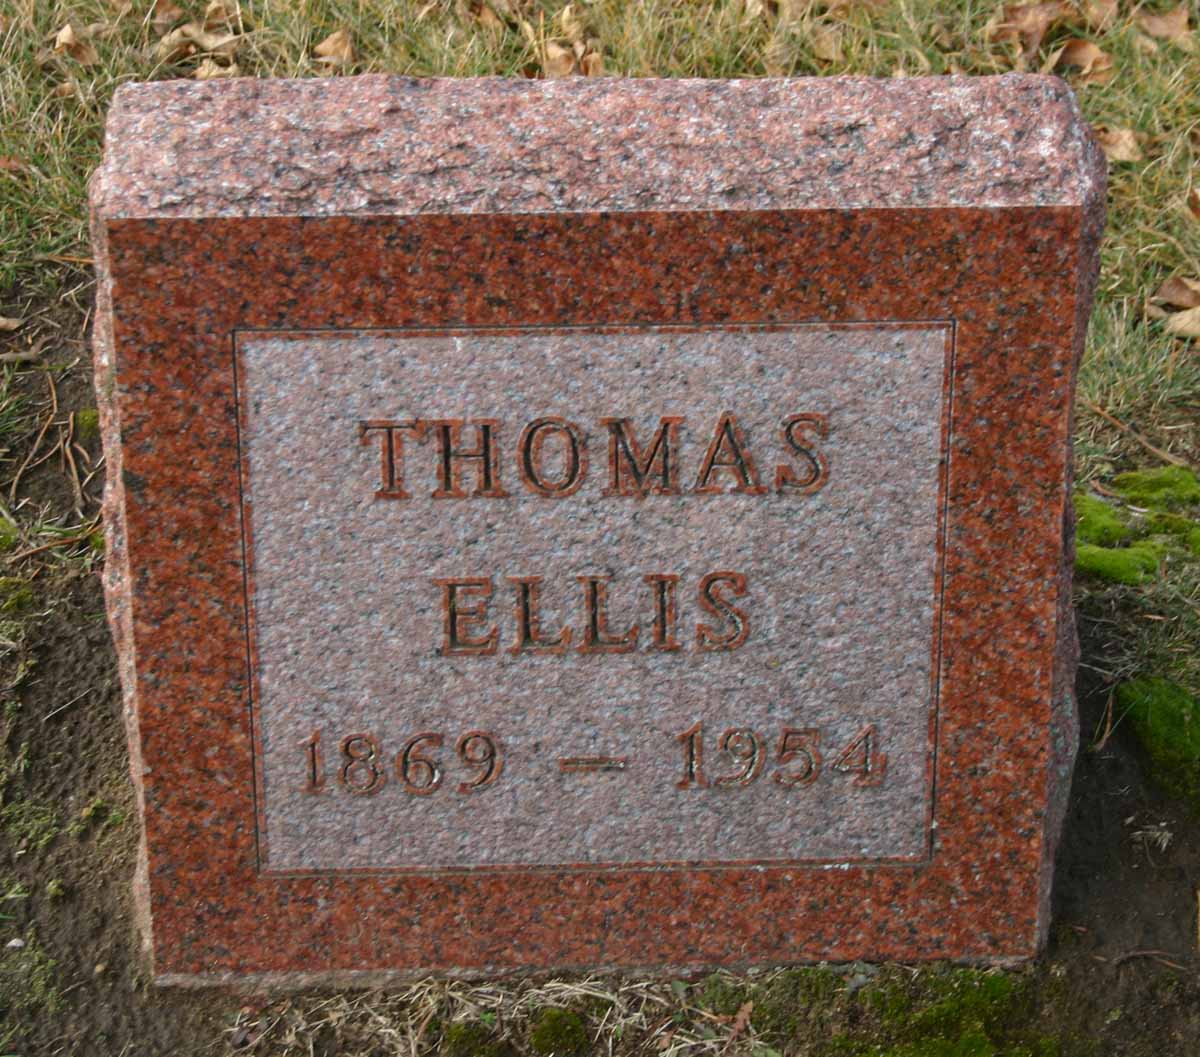 Thomas Harvey Ellis